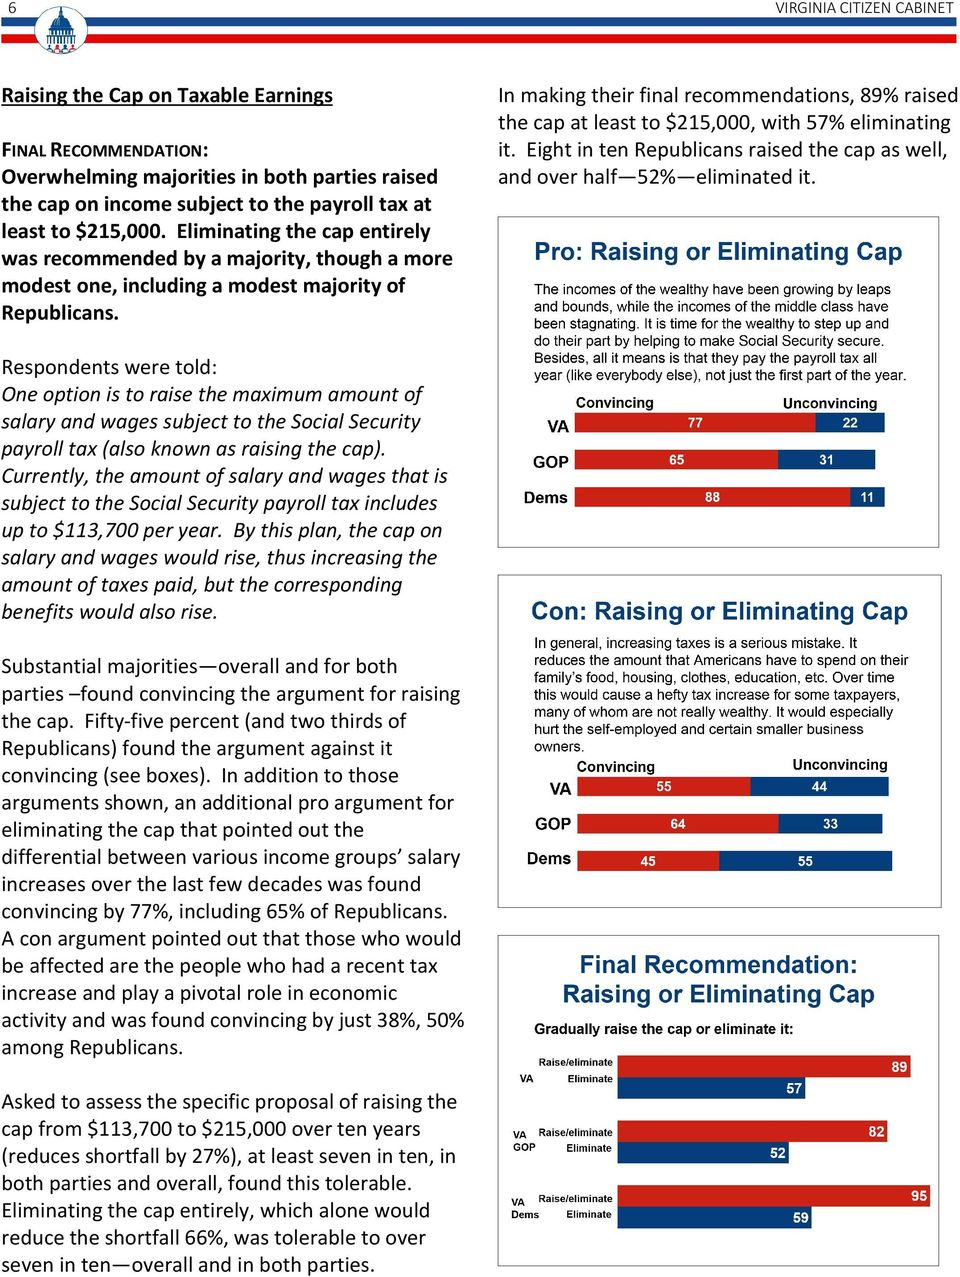 In making their final recommendations, 89% raised the cap at least to $215,000, with 57% eliminating it. Eight in ten Republicans raised the cap as well, and over half 52% eliminated it.